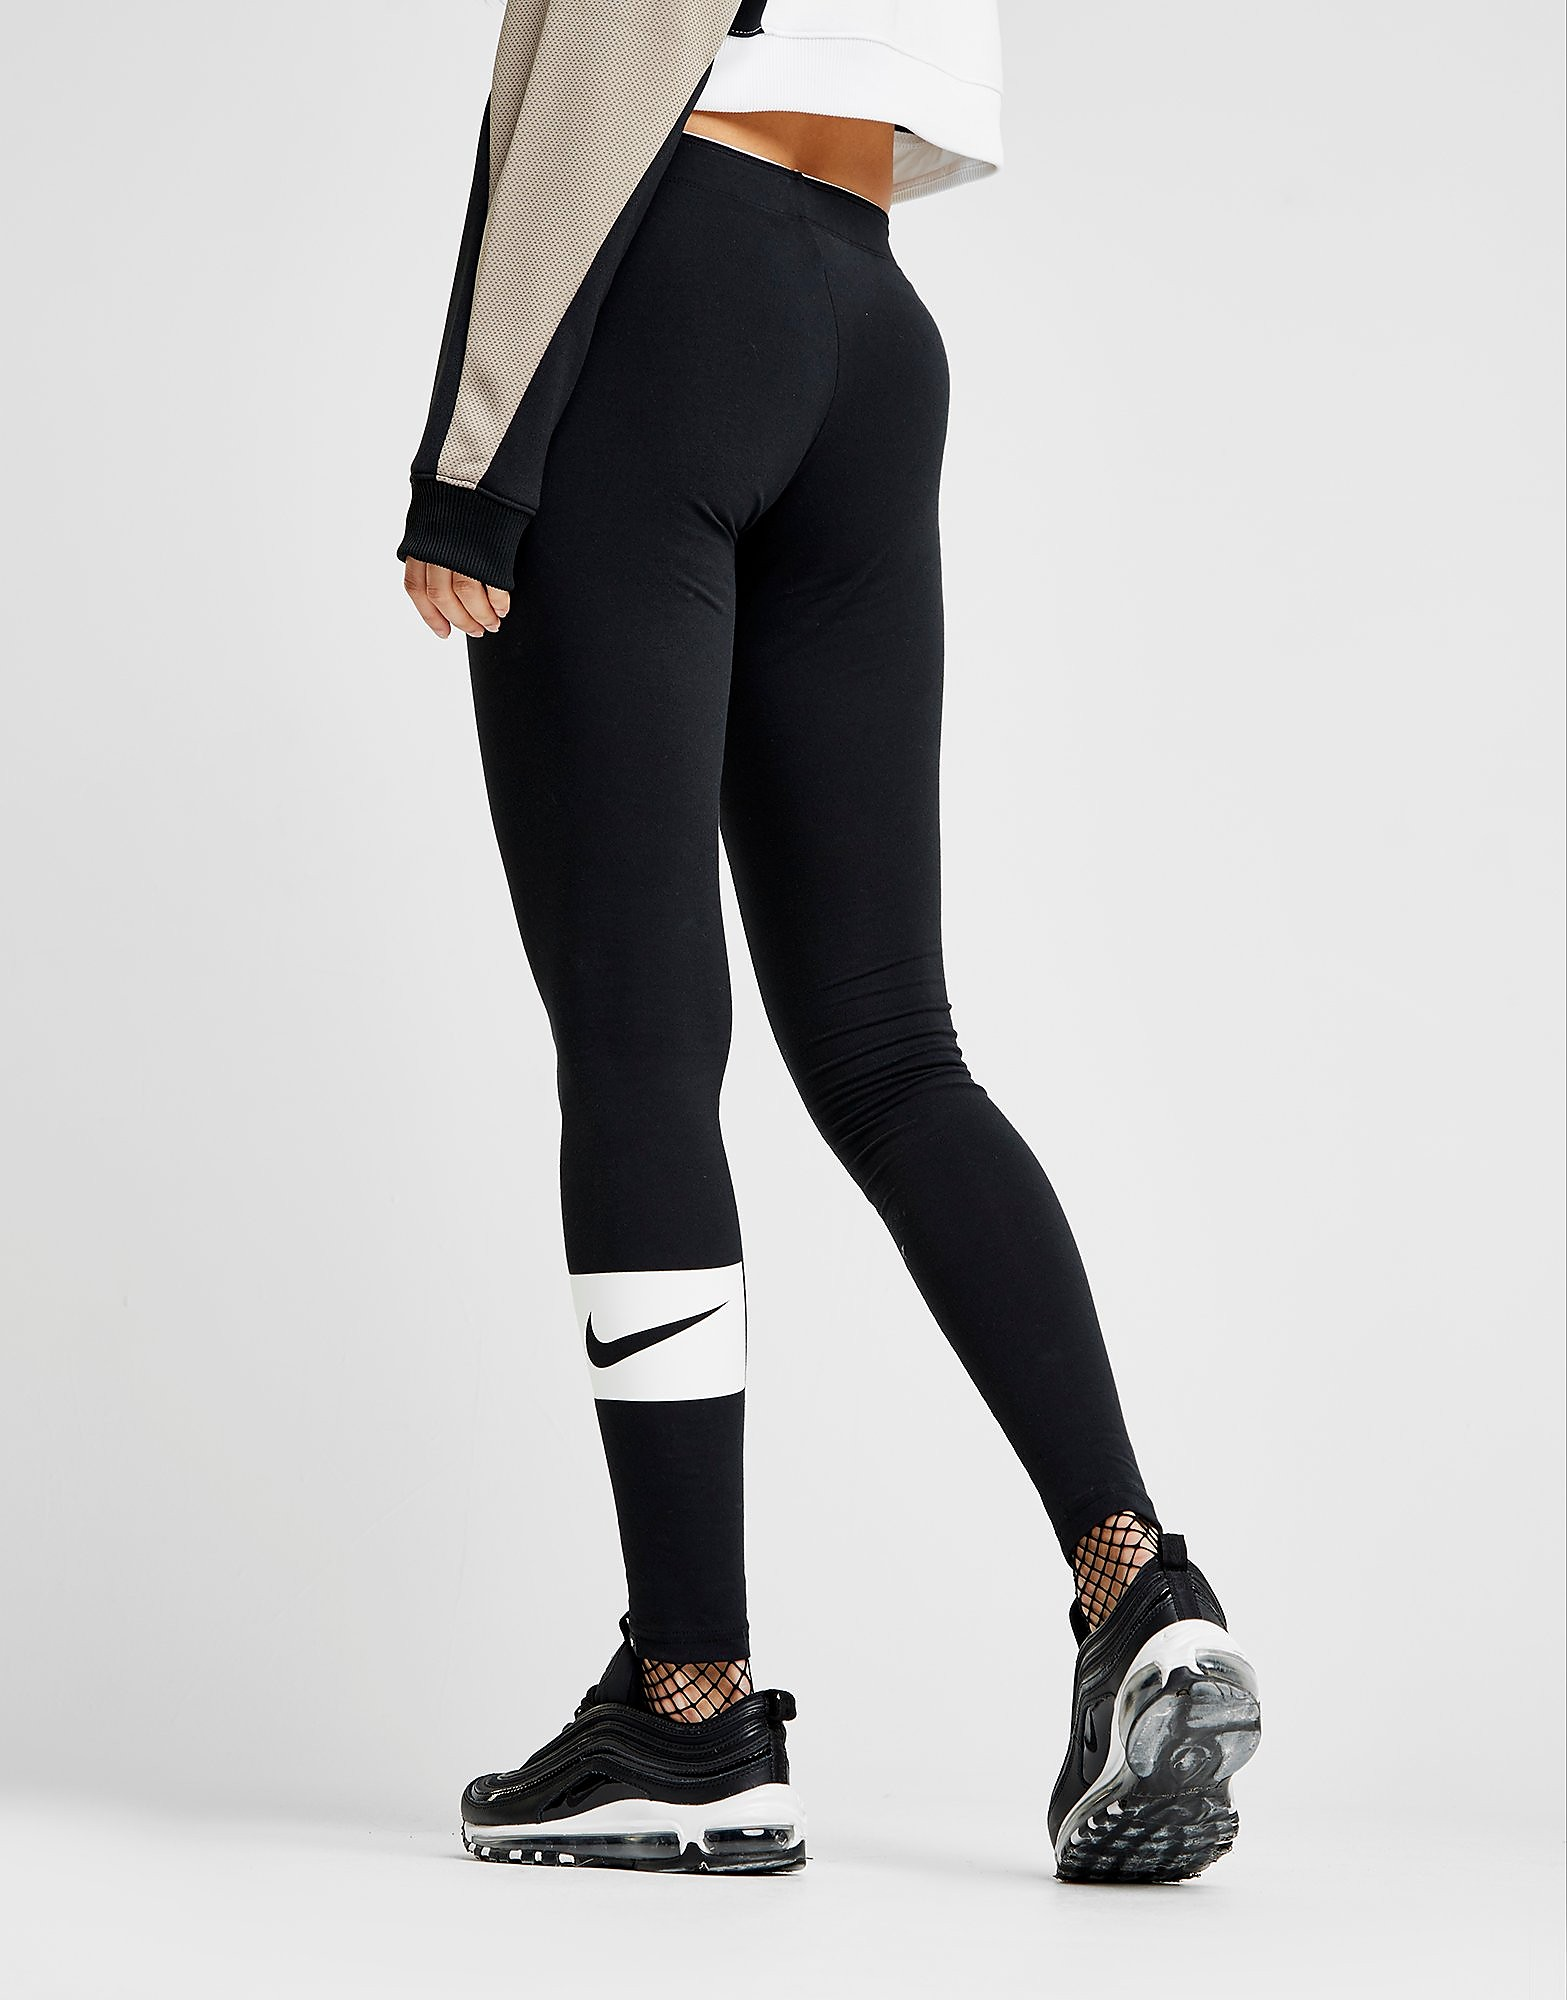 Nike leggings Swoosh Box